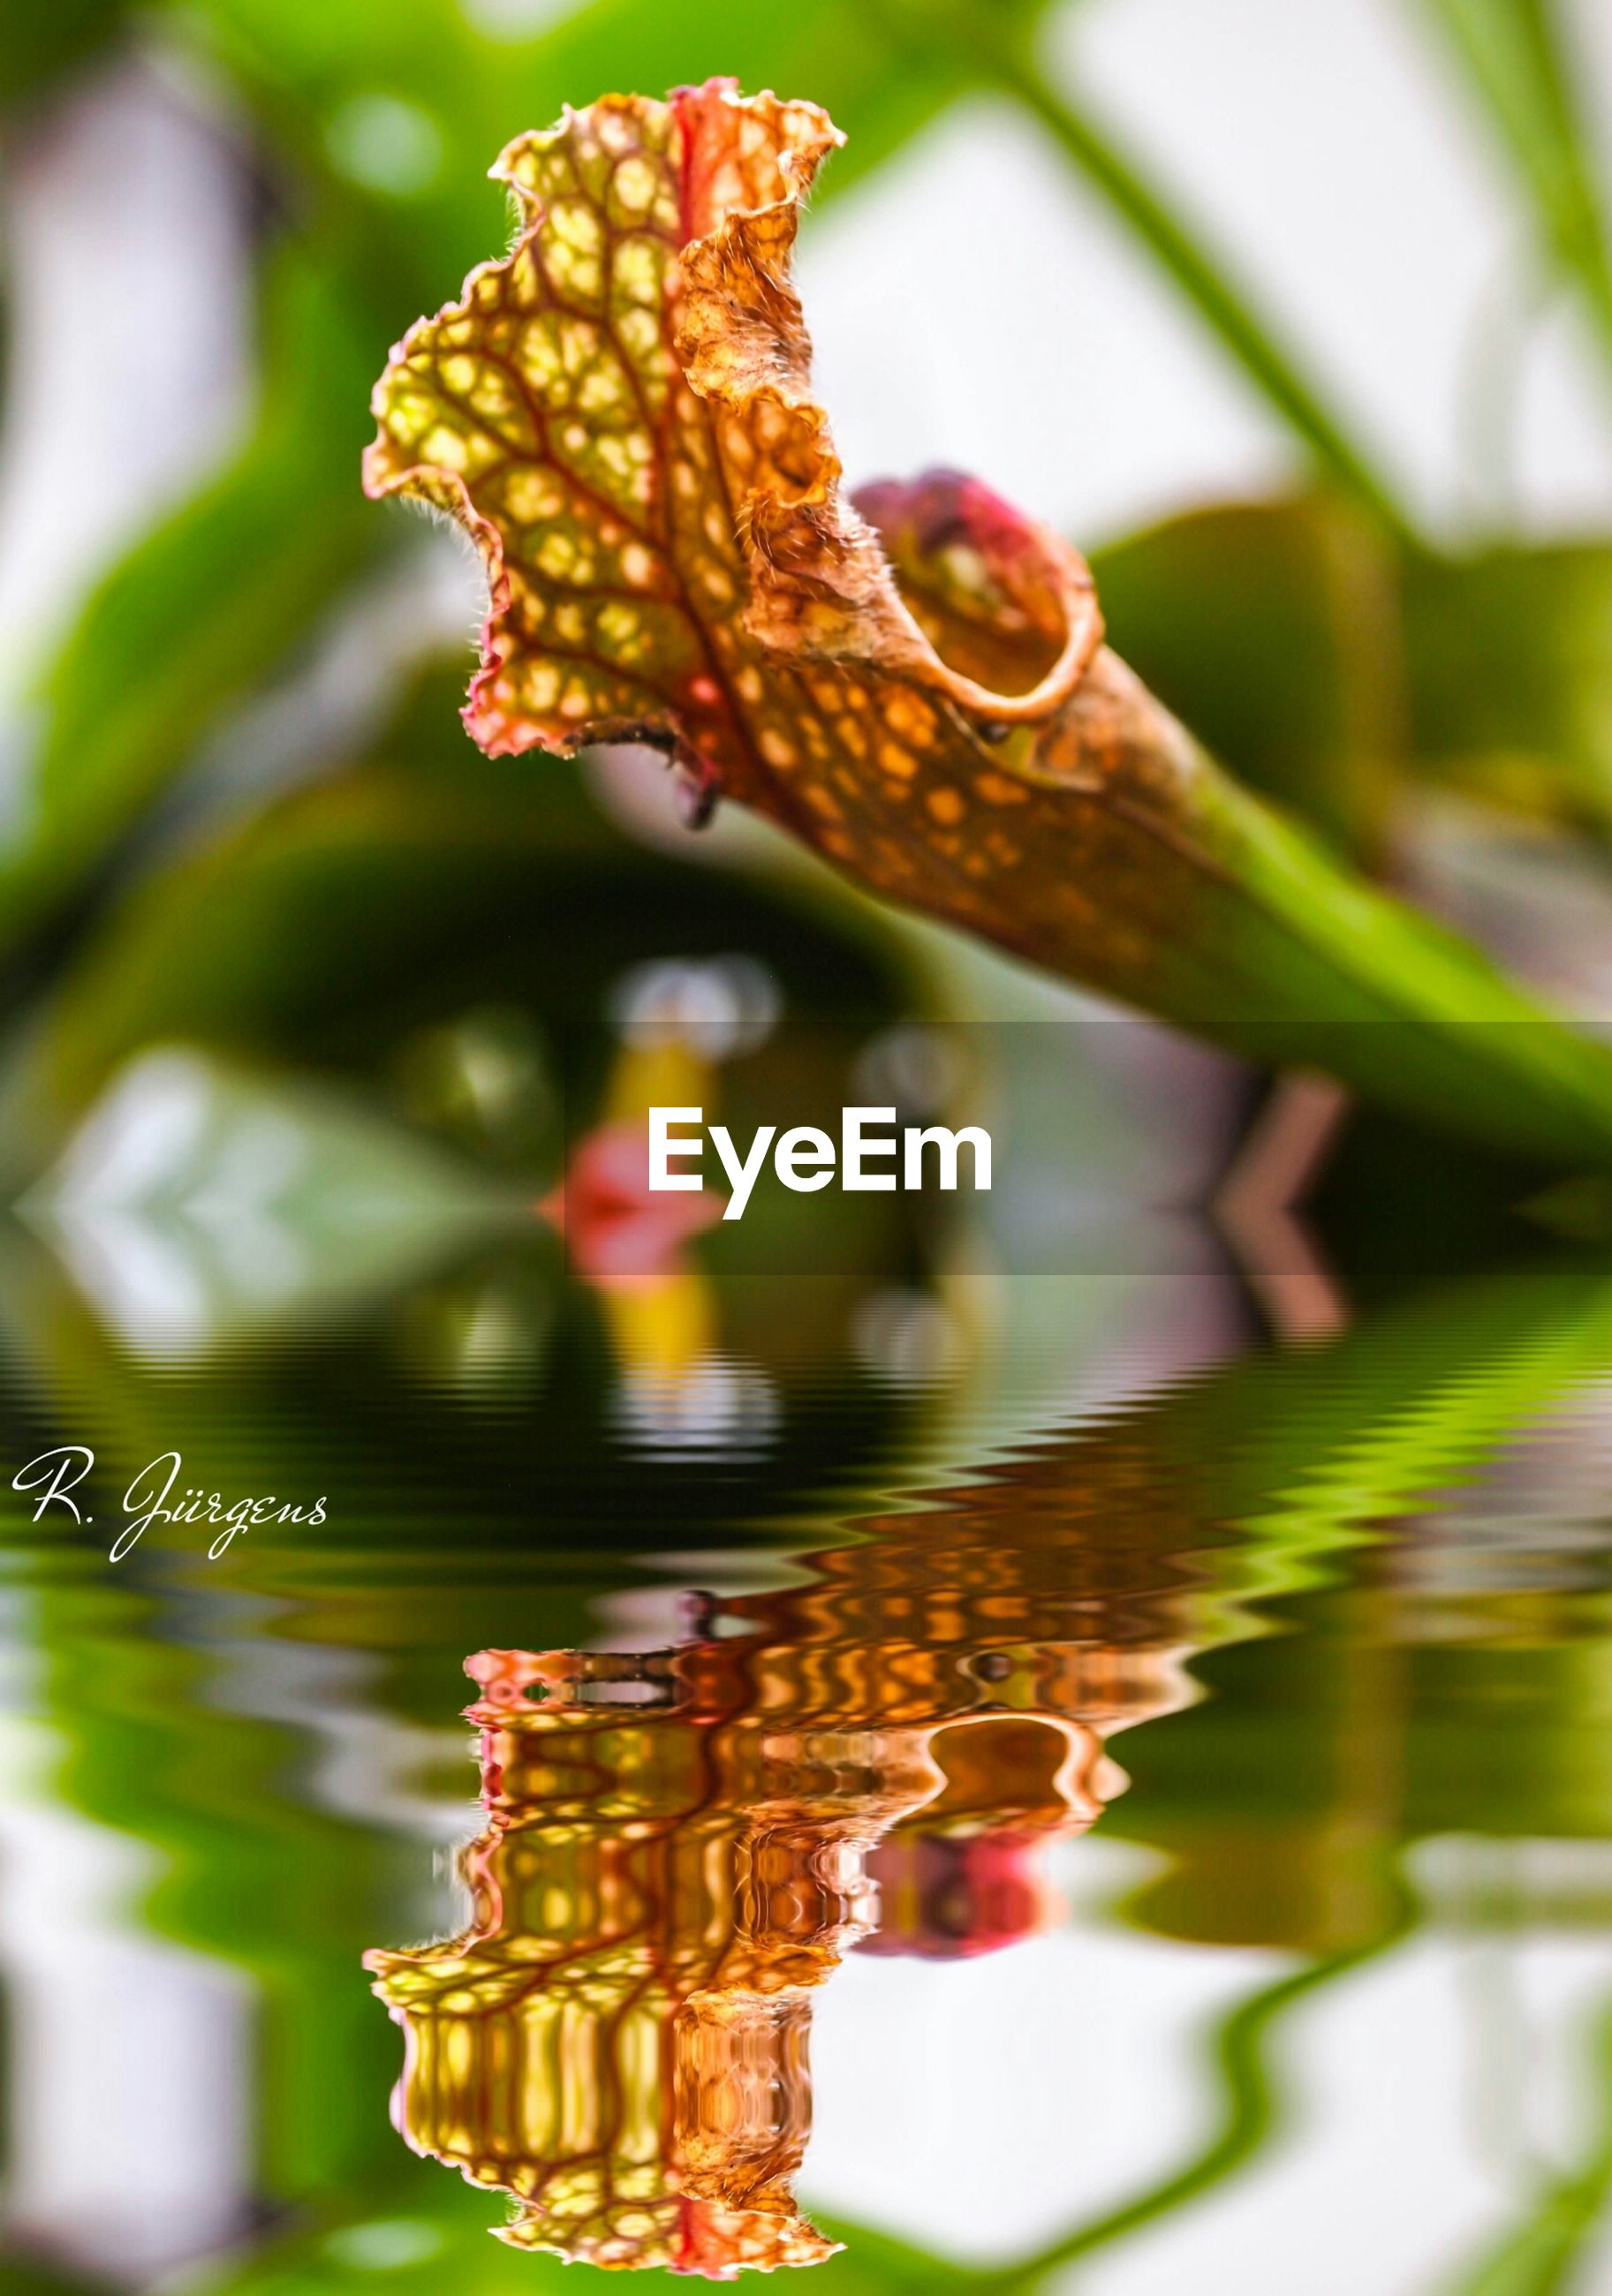 focus on foreground, close-up, selective focus, flower, water, nature, day, outdoors, no people, beauty in nature, plant, freshness, multi colored, hanging, tradition, reflection, growth, decoration, red, cultures